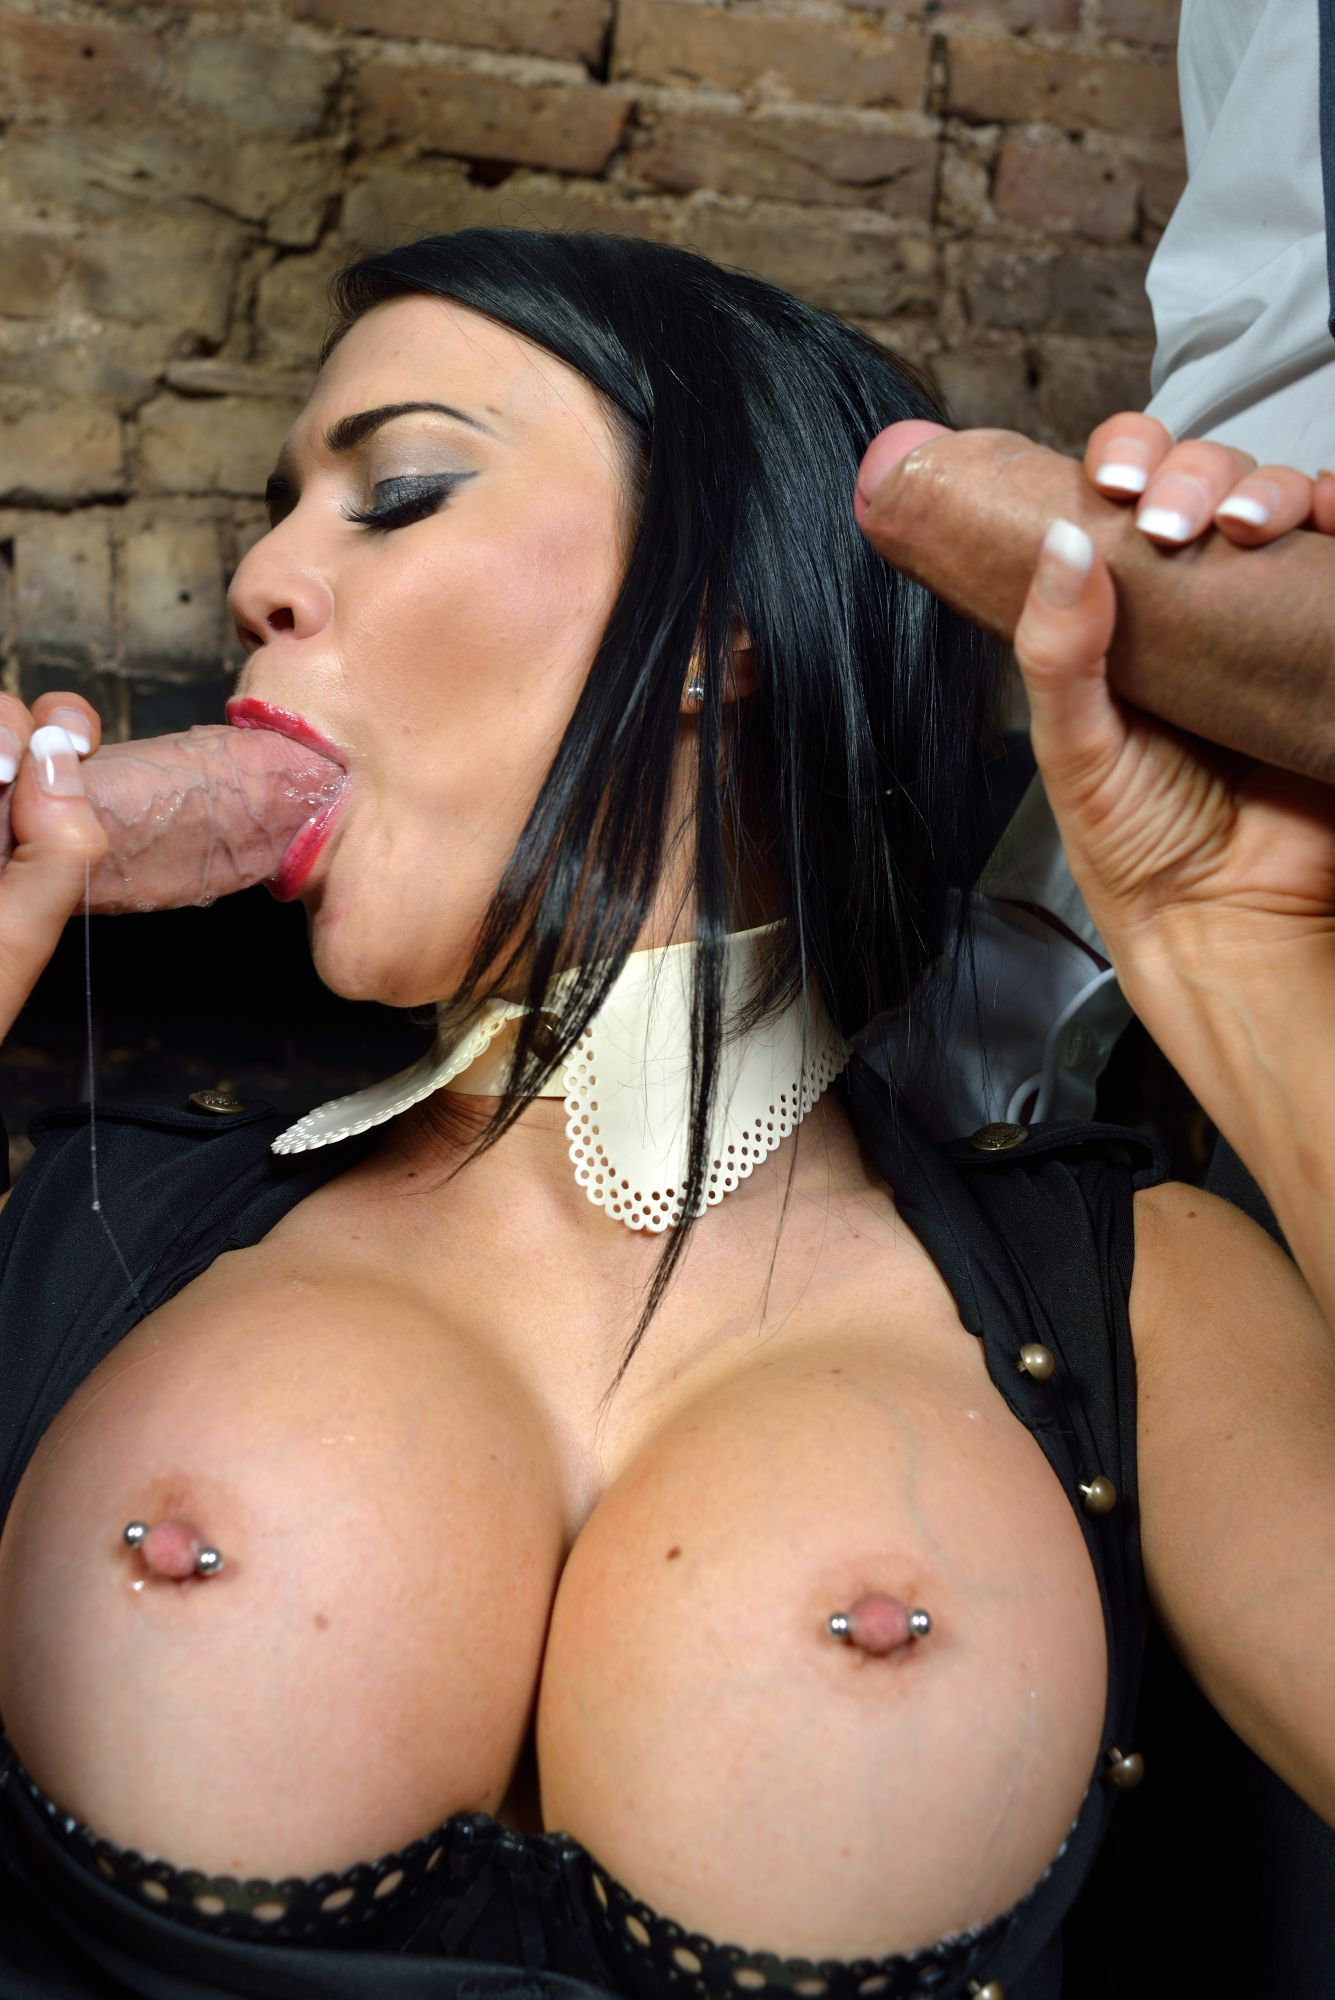 Harmony vision jasmine jae fucked by two monster cocks 10